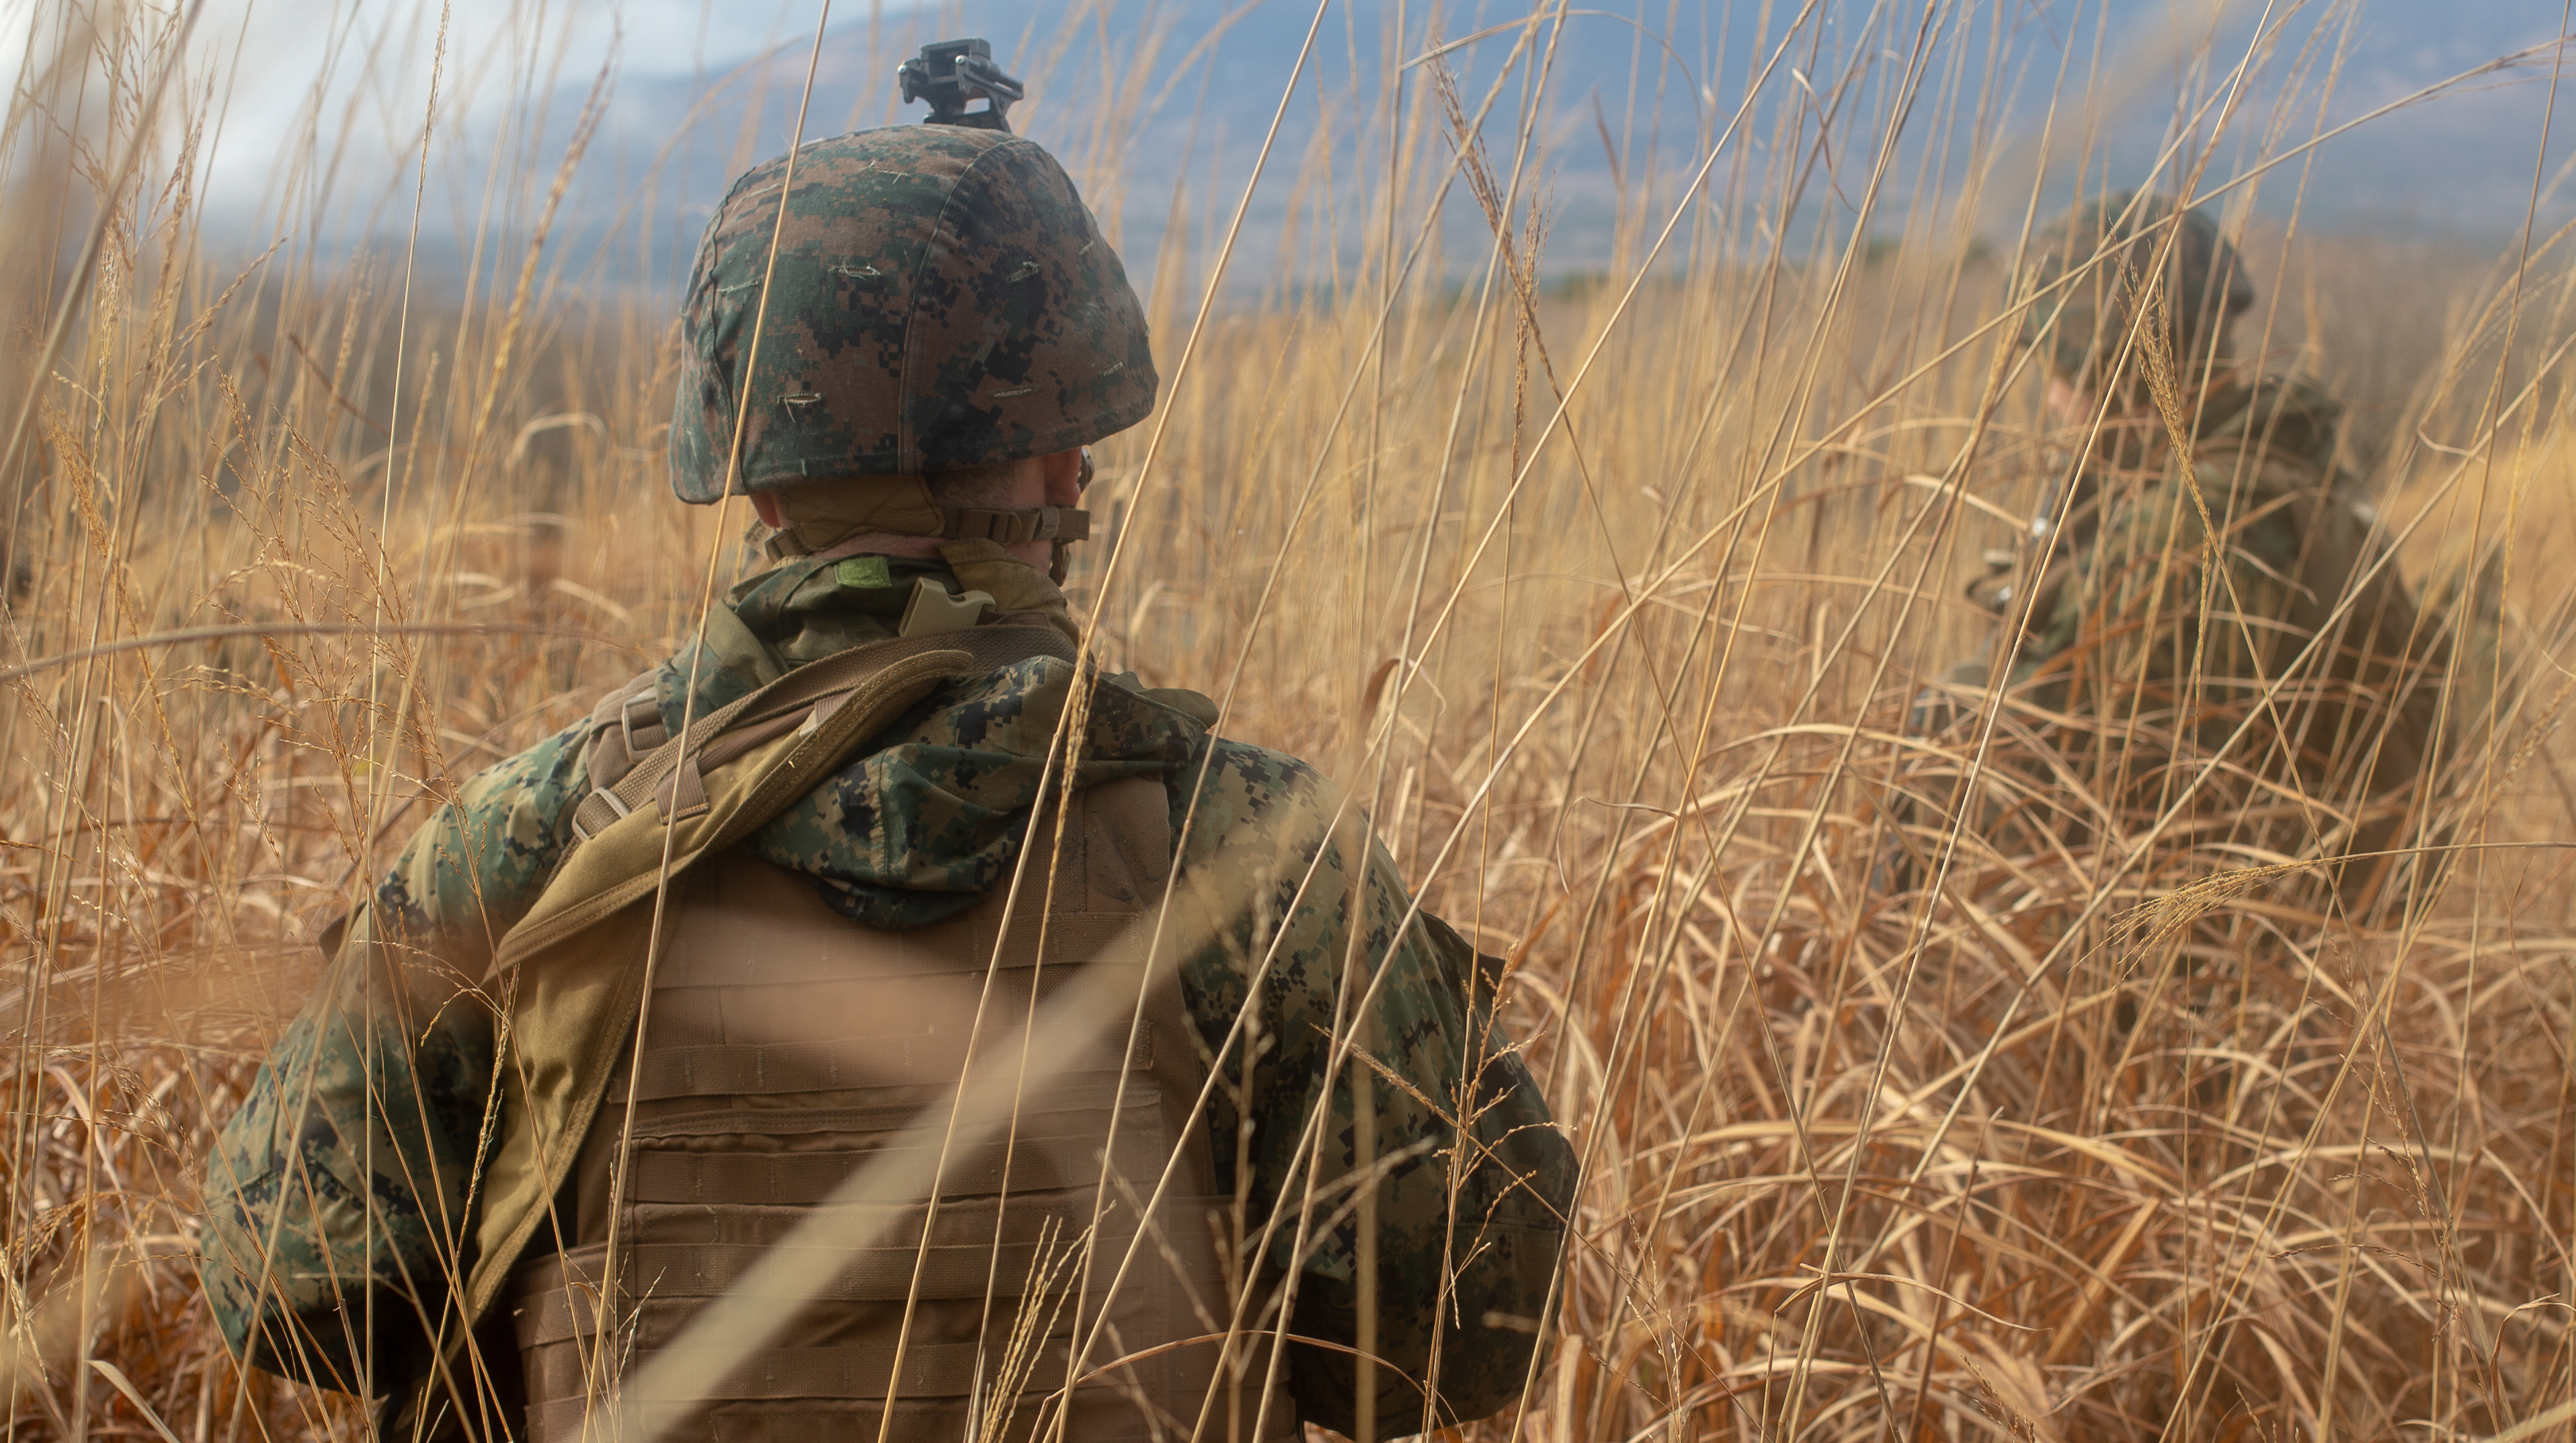 U.S. Marines conduct a battalion force on force event during exercise Fuji Viper 20-2